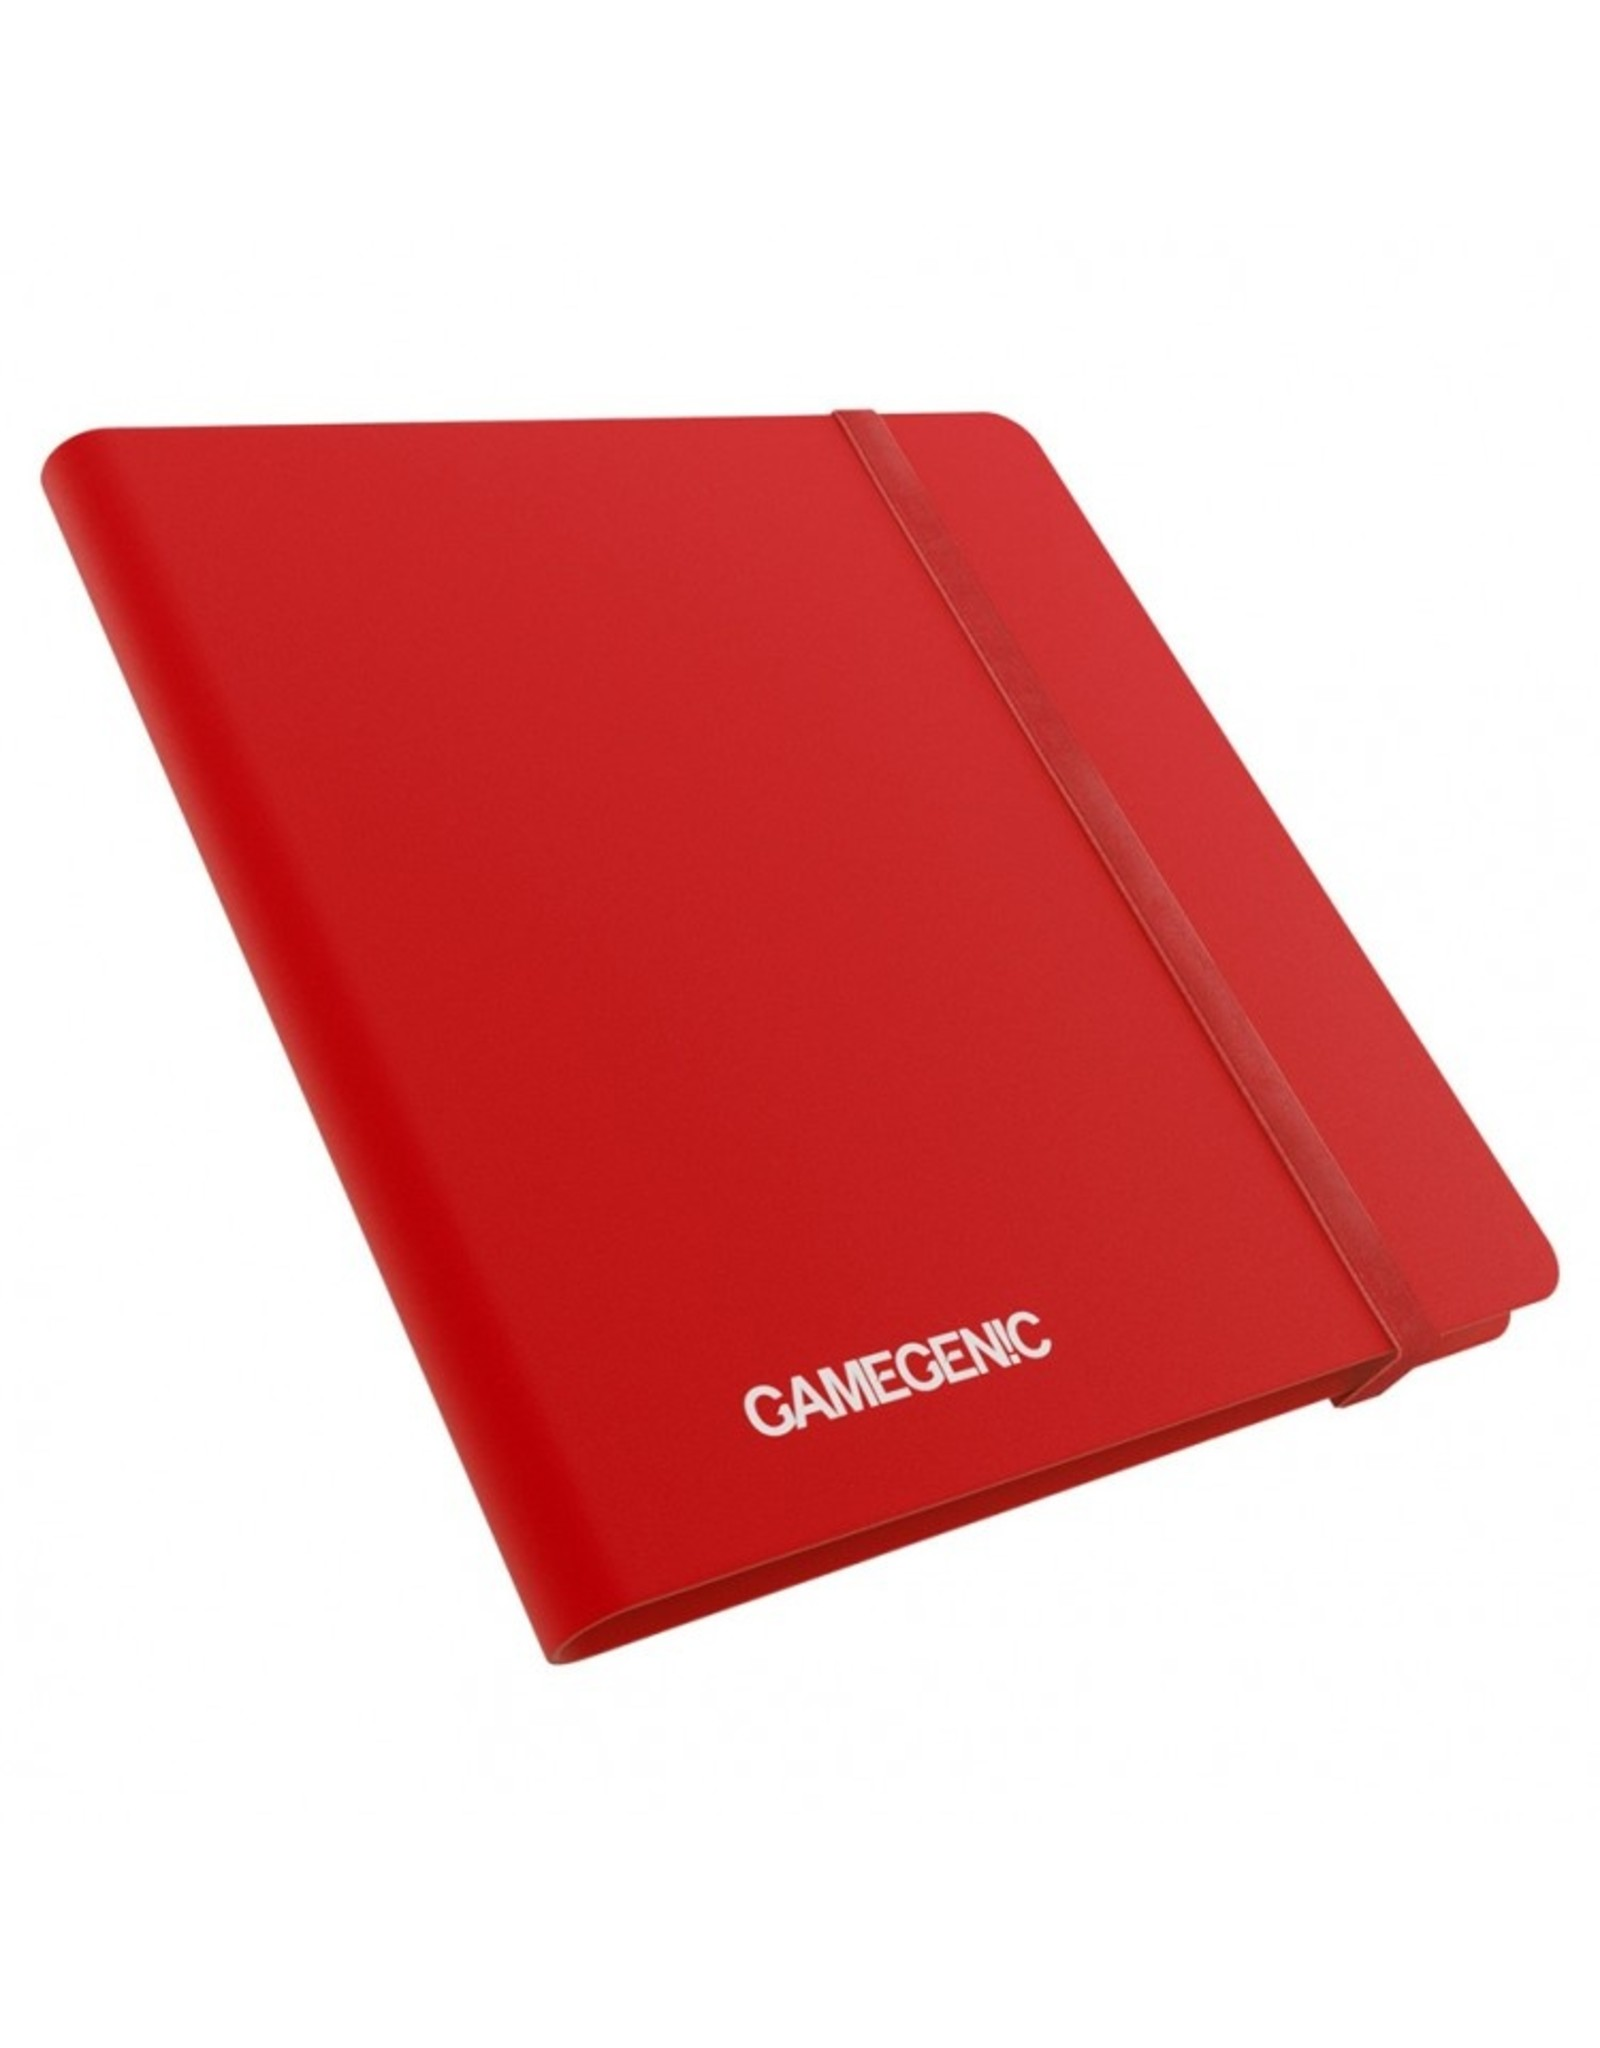 GameGenic Binder: 24pkt: Casual Album: RD